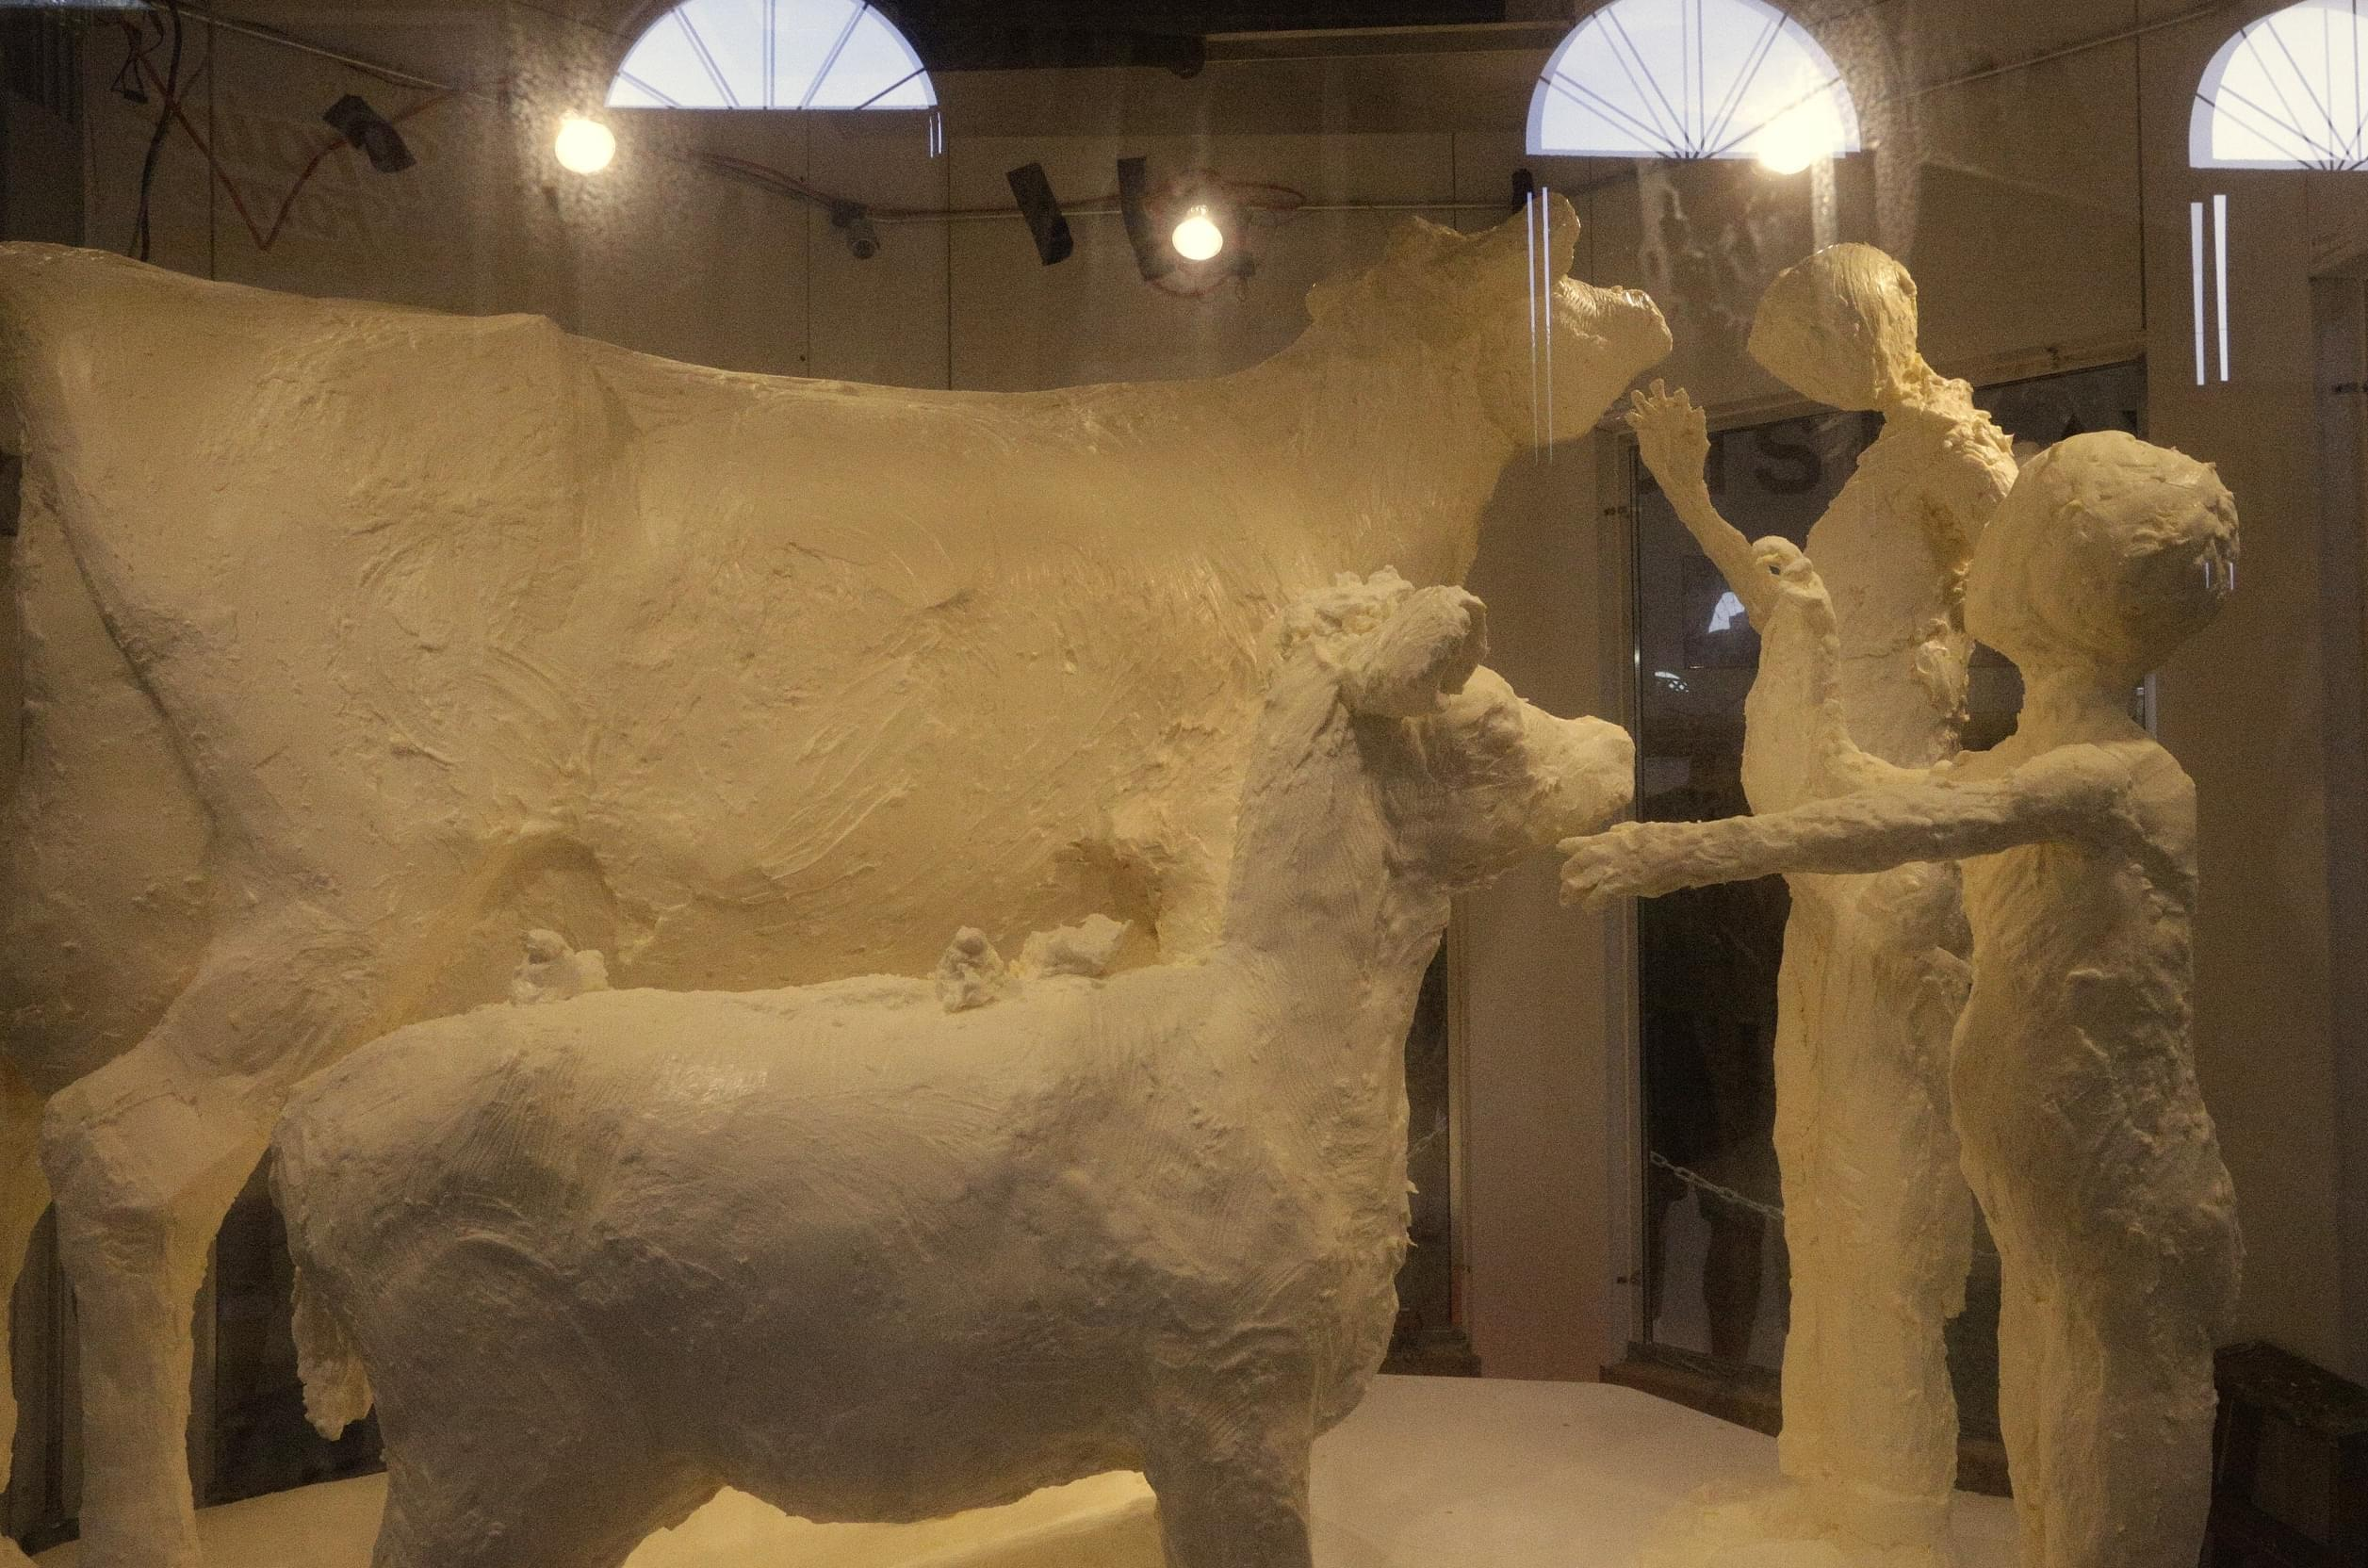 The work-in-progress 2015 Illinois State Fair butter cow is unveiled at the Illinois State Fair Thursday, Aug. 13, 2015, in Springfield.